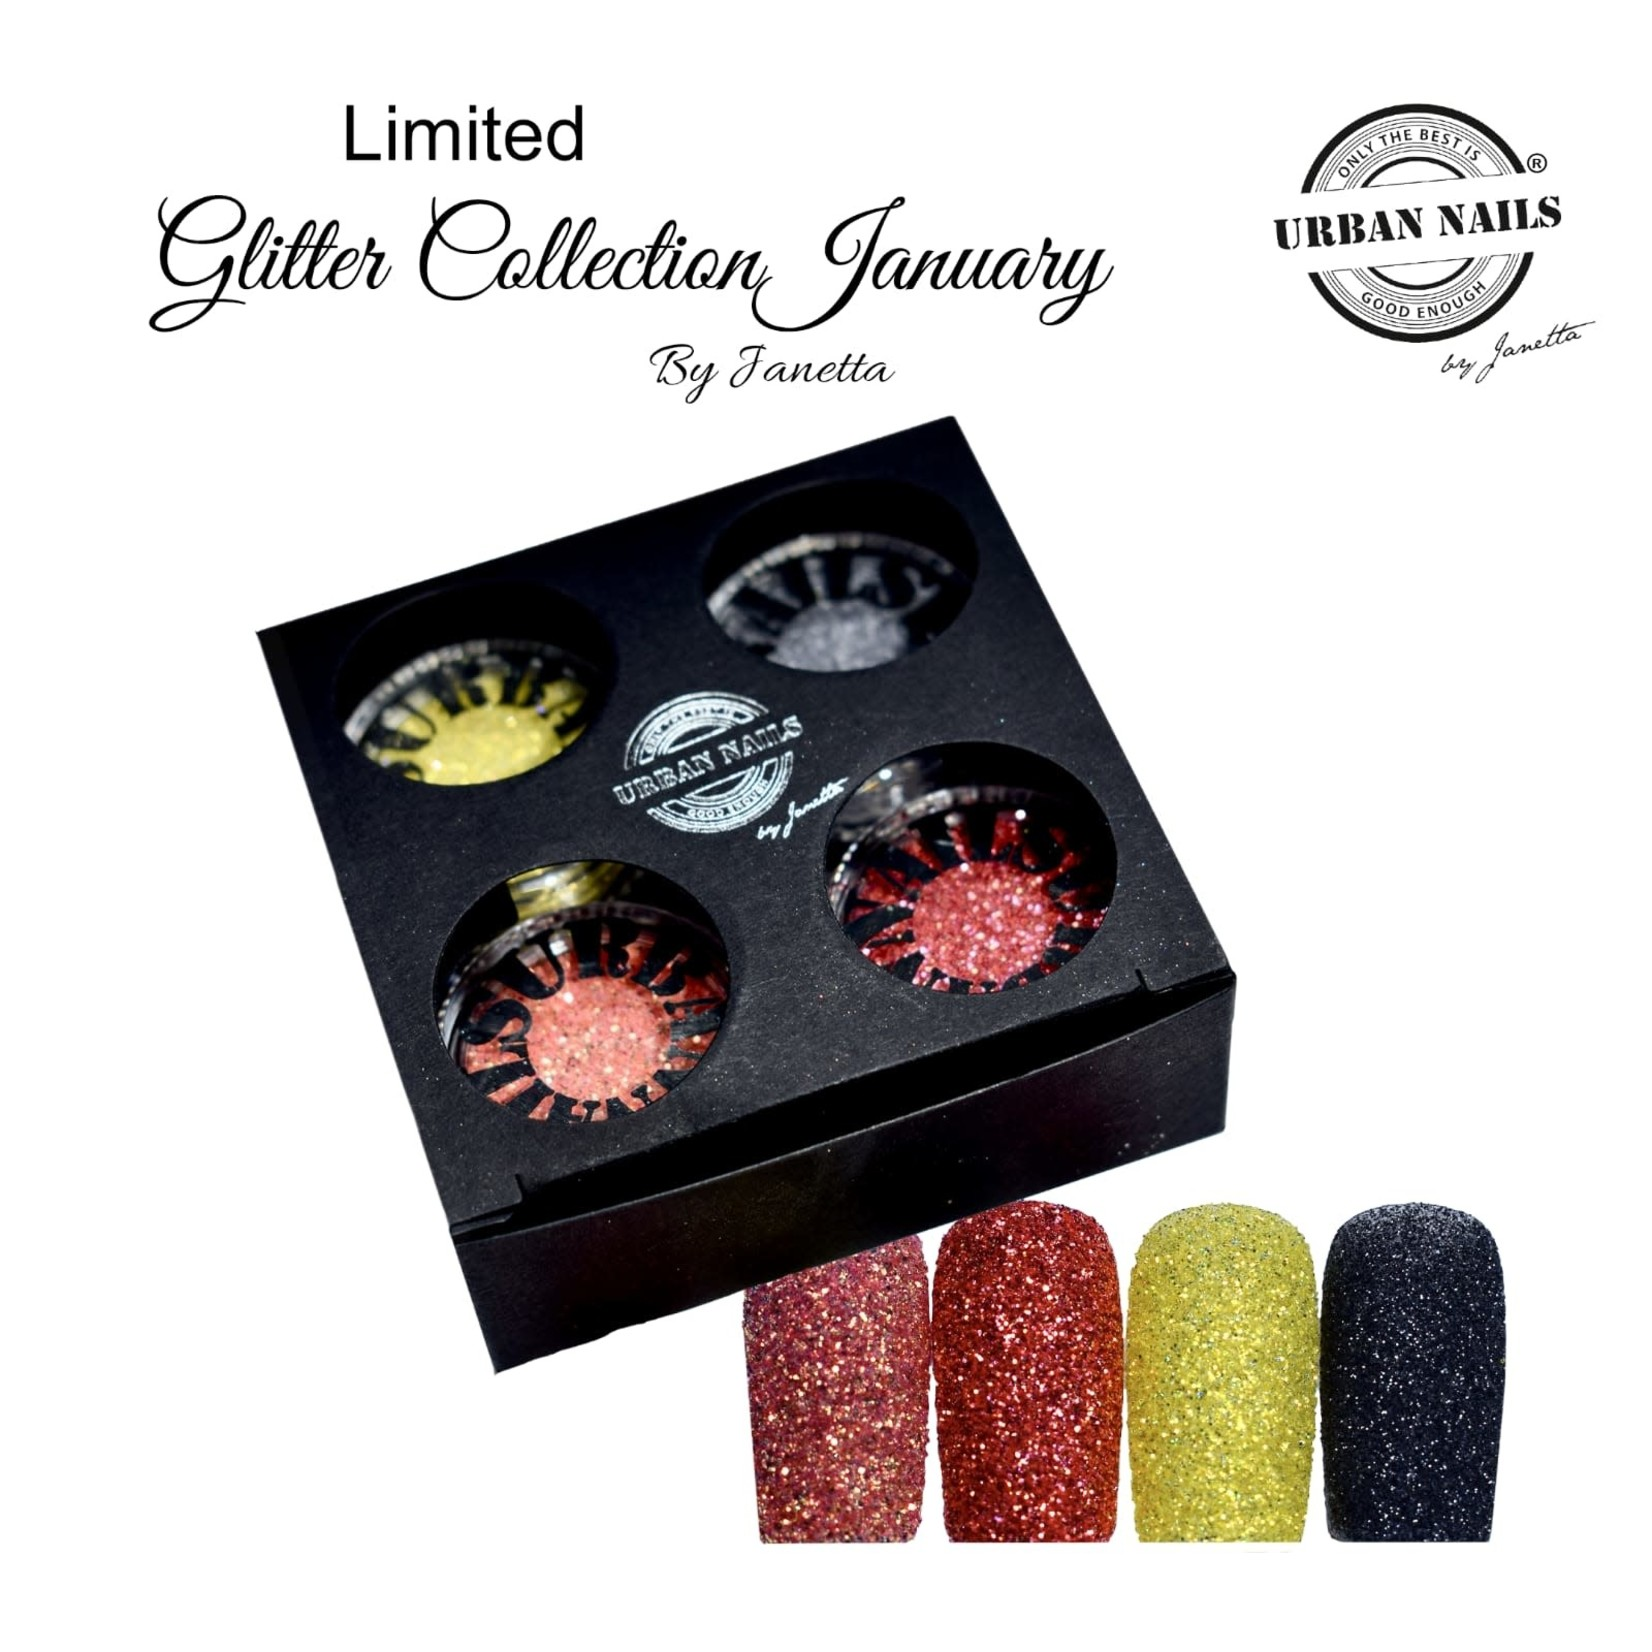 Urban Nails Limited Glitter Collection January